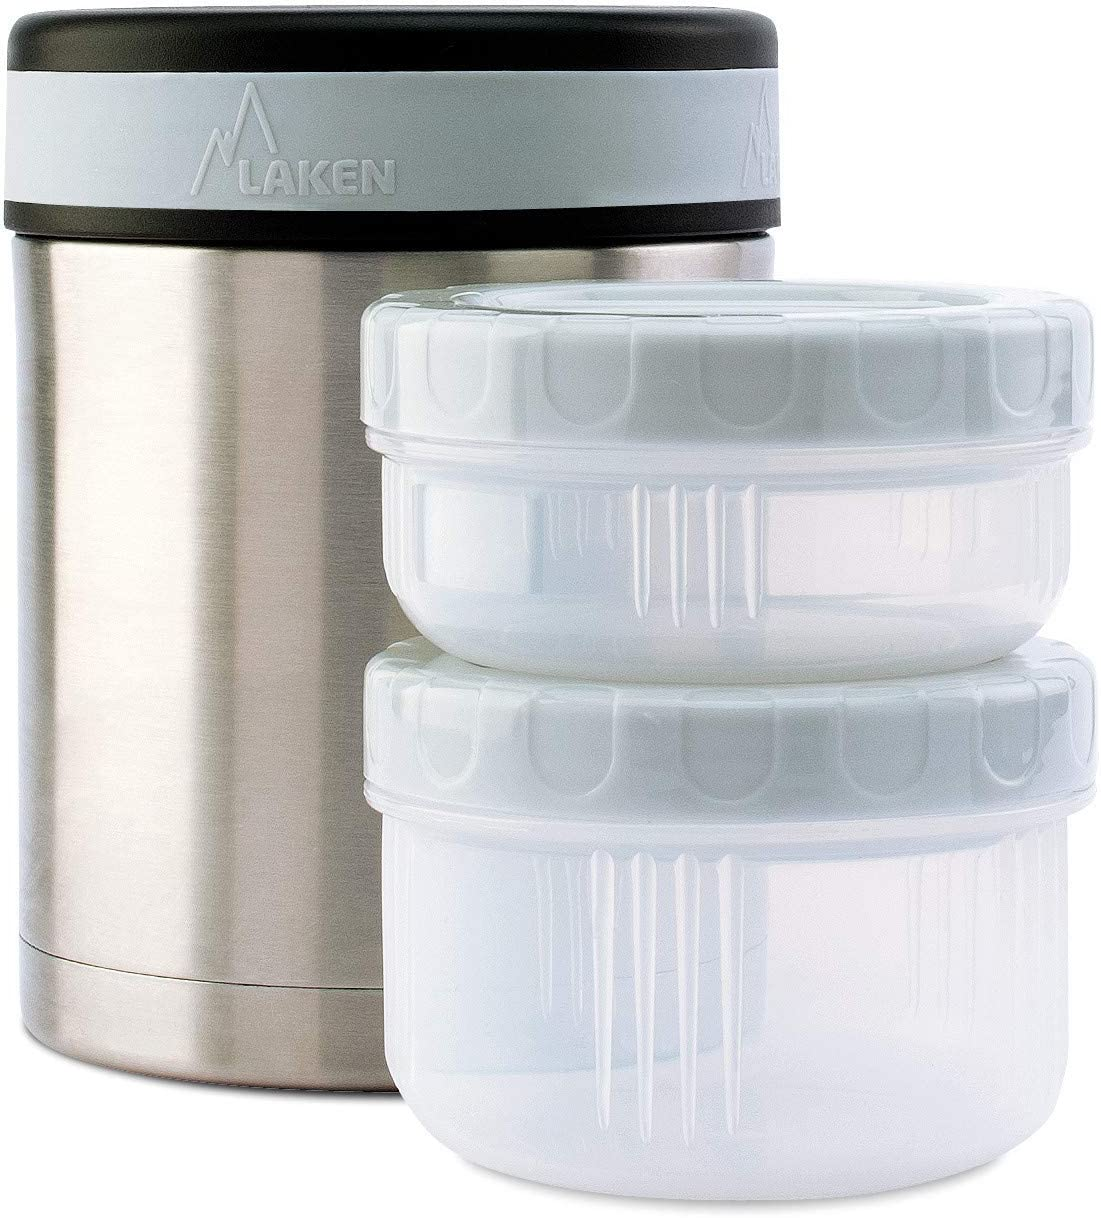 Laken Thermo Vacuum Insulated Stainless Steel Food Jar Container w/Cover and 2 PP Containers